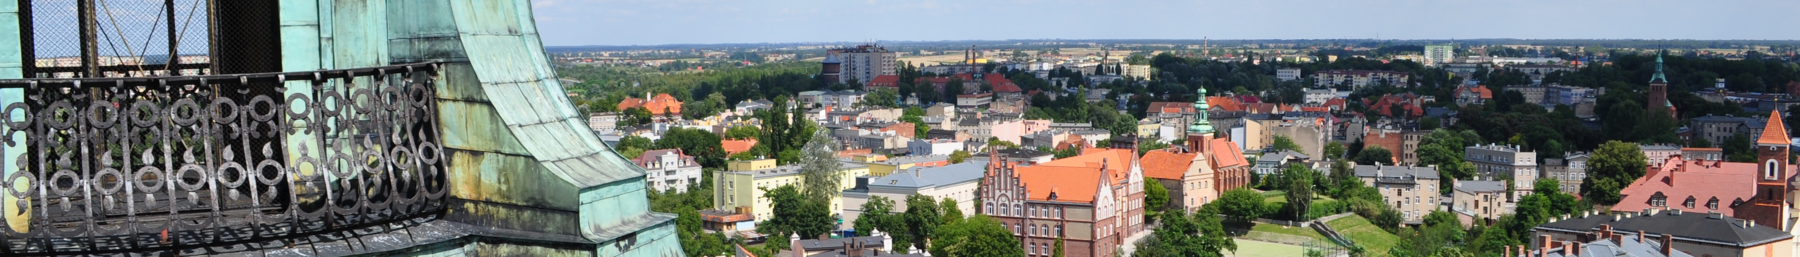 Gniezno Wikivoyage Banner.png